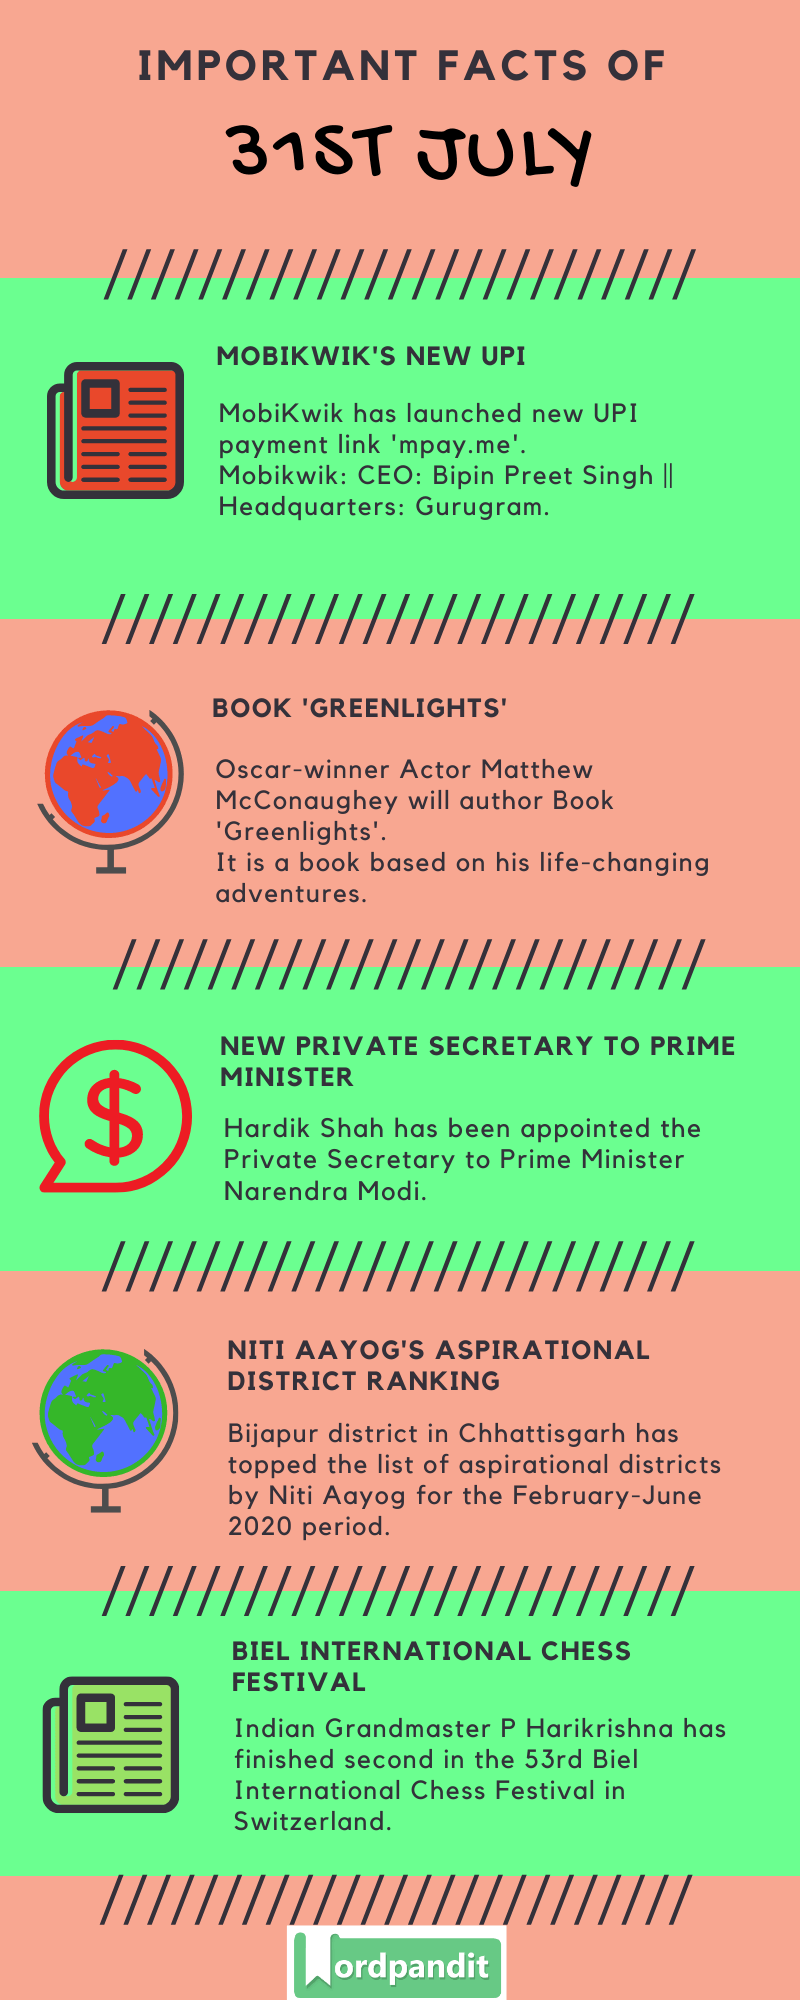 Daily Current Affairs 31st July 2020 Current Affairs Quiz 31st July 2020 Current Affairs Infographic